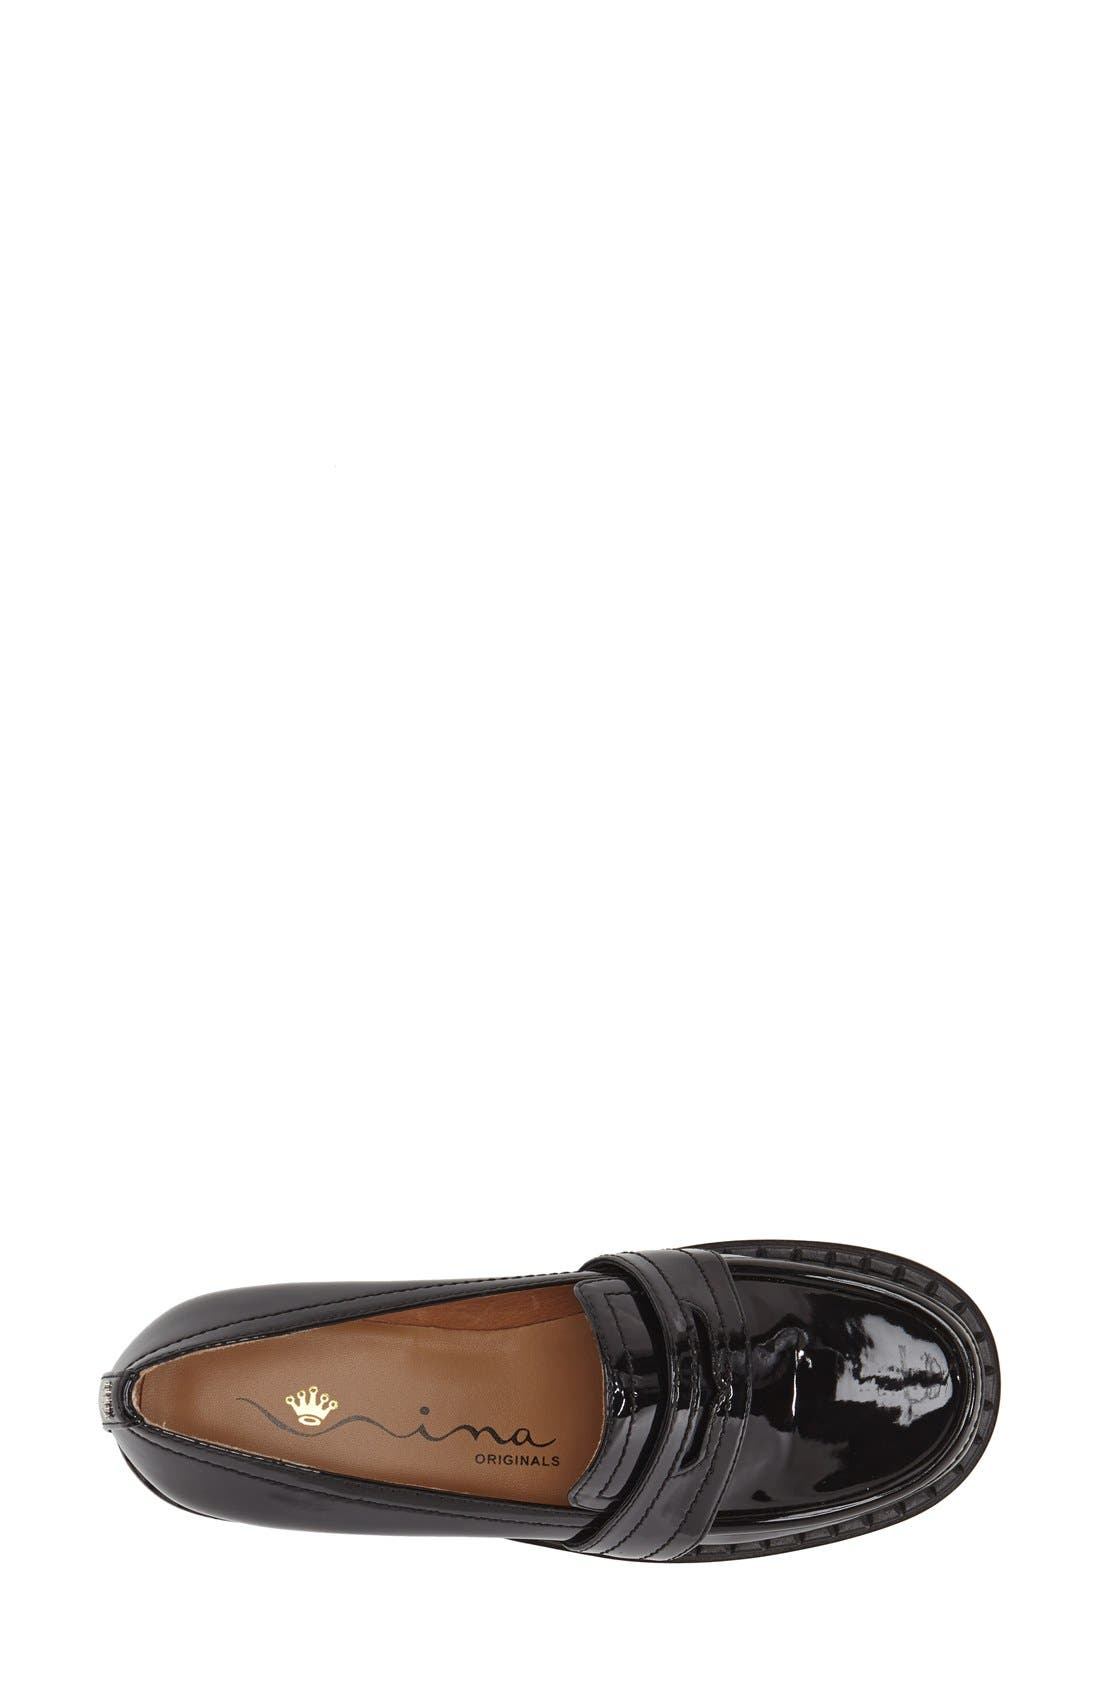 Alternate Image 3  - Nina Originals 'Mystique' Penny Loafer (Women)